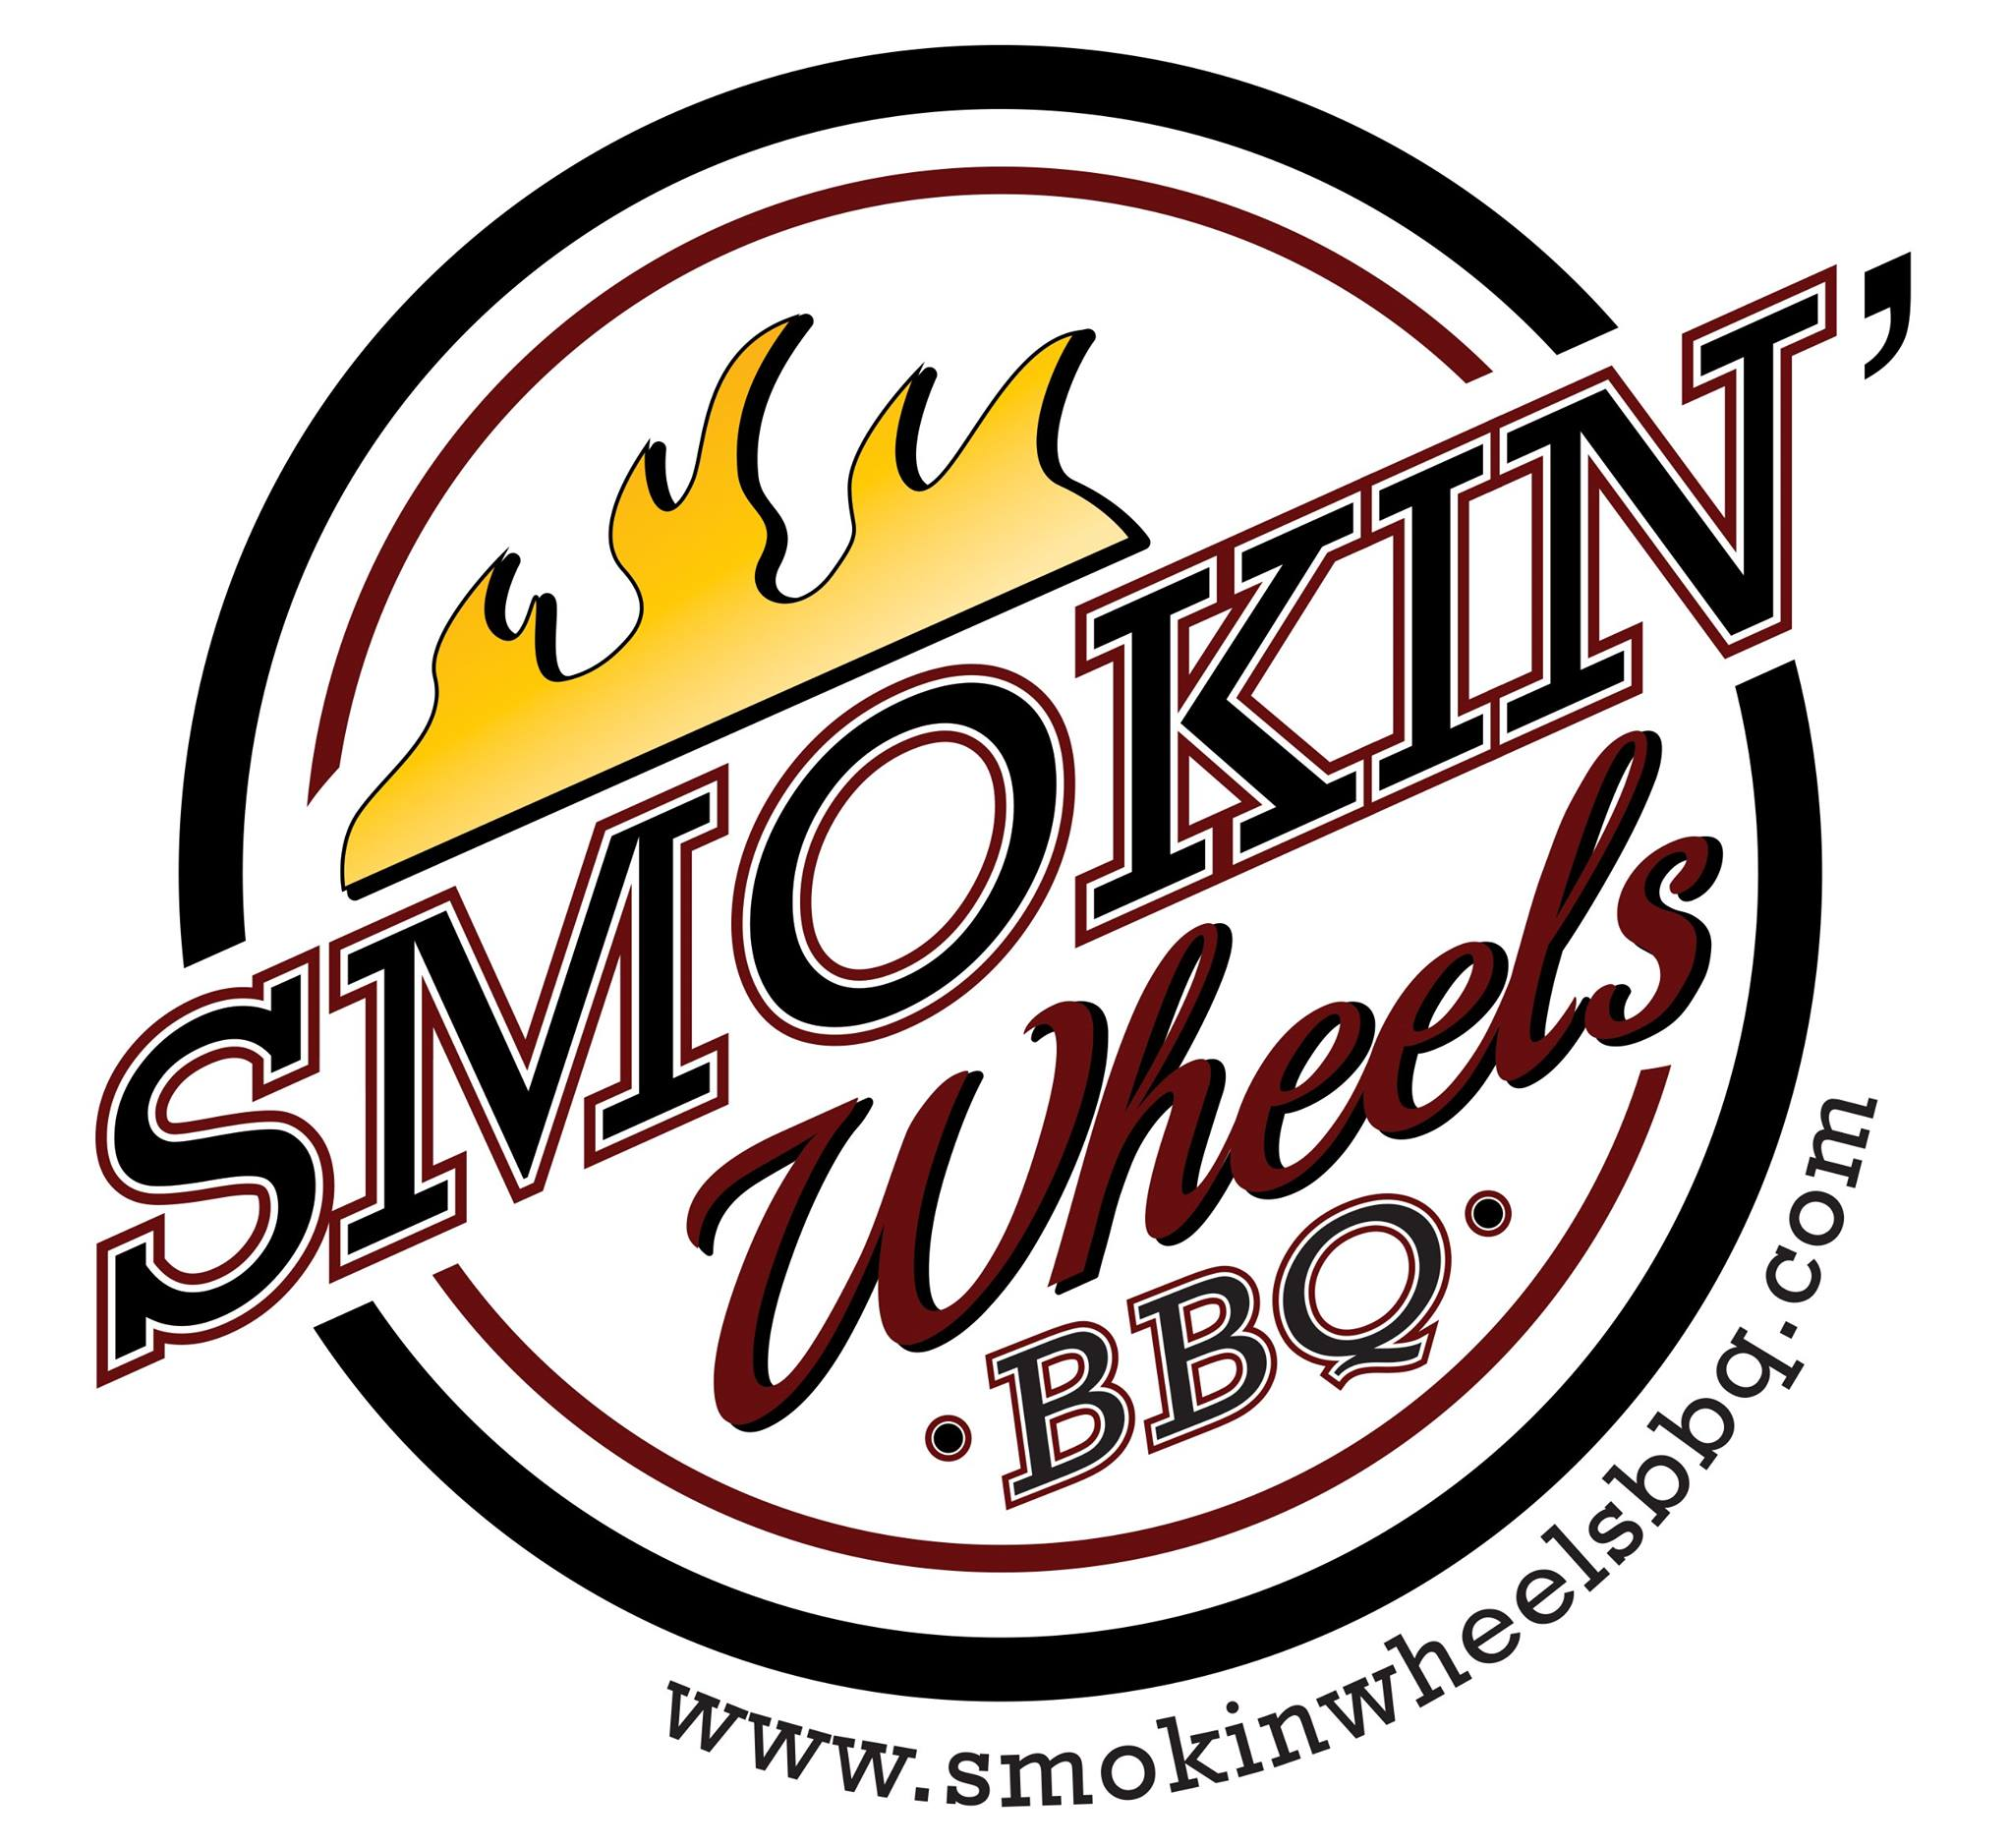 smoking-wheels-bbq-springfield-mo.jpg